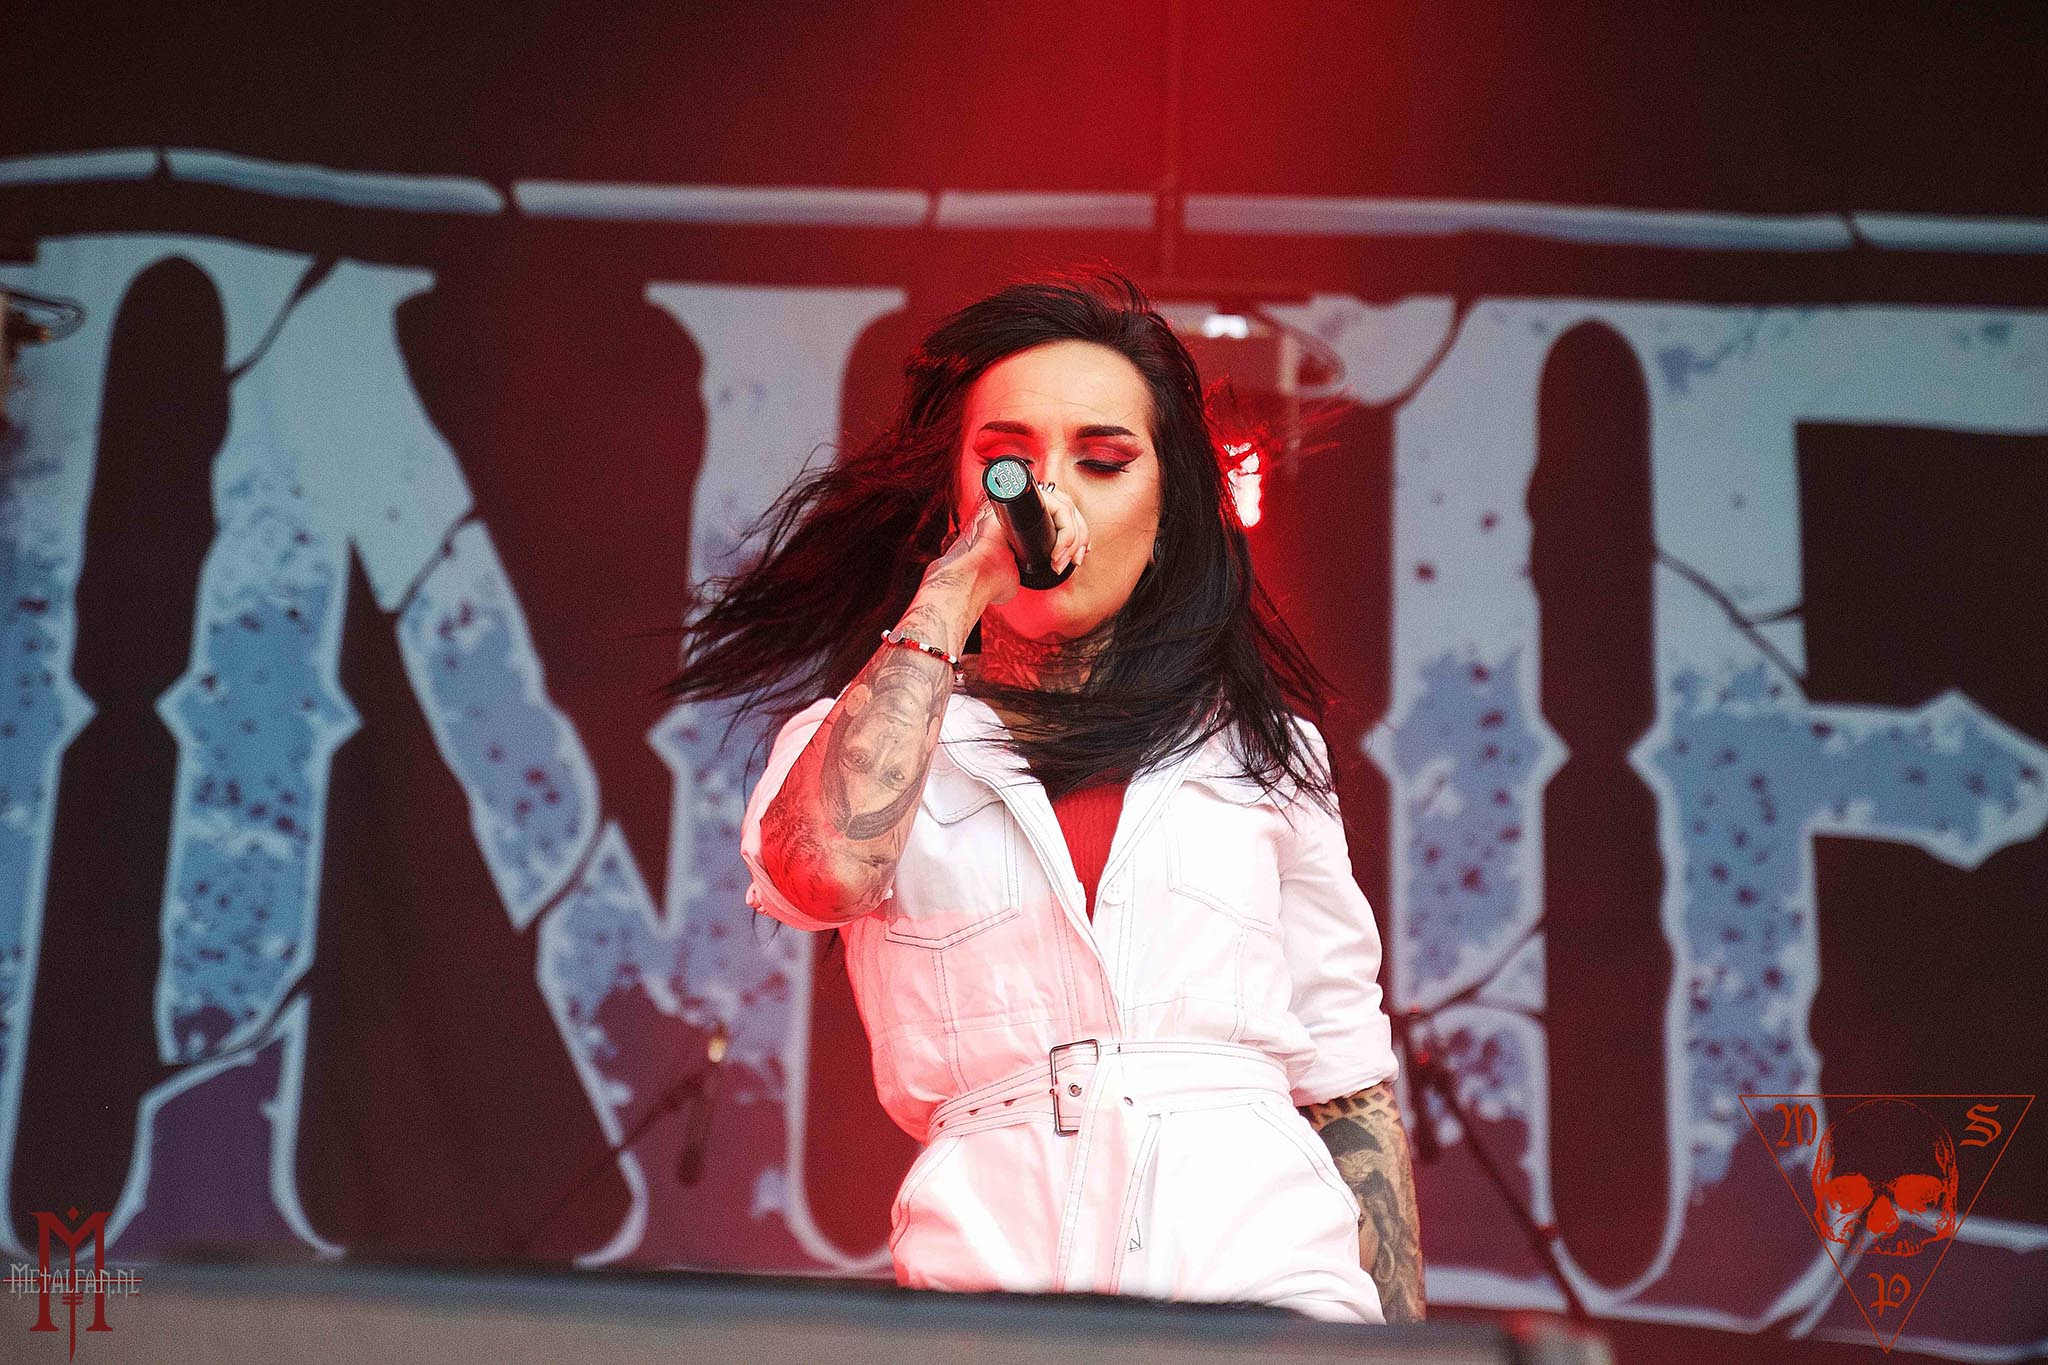 Jinjer @ Into The Grave 2019